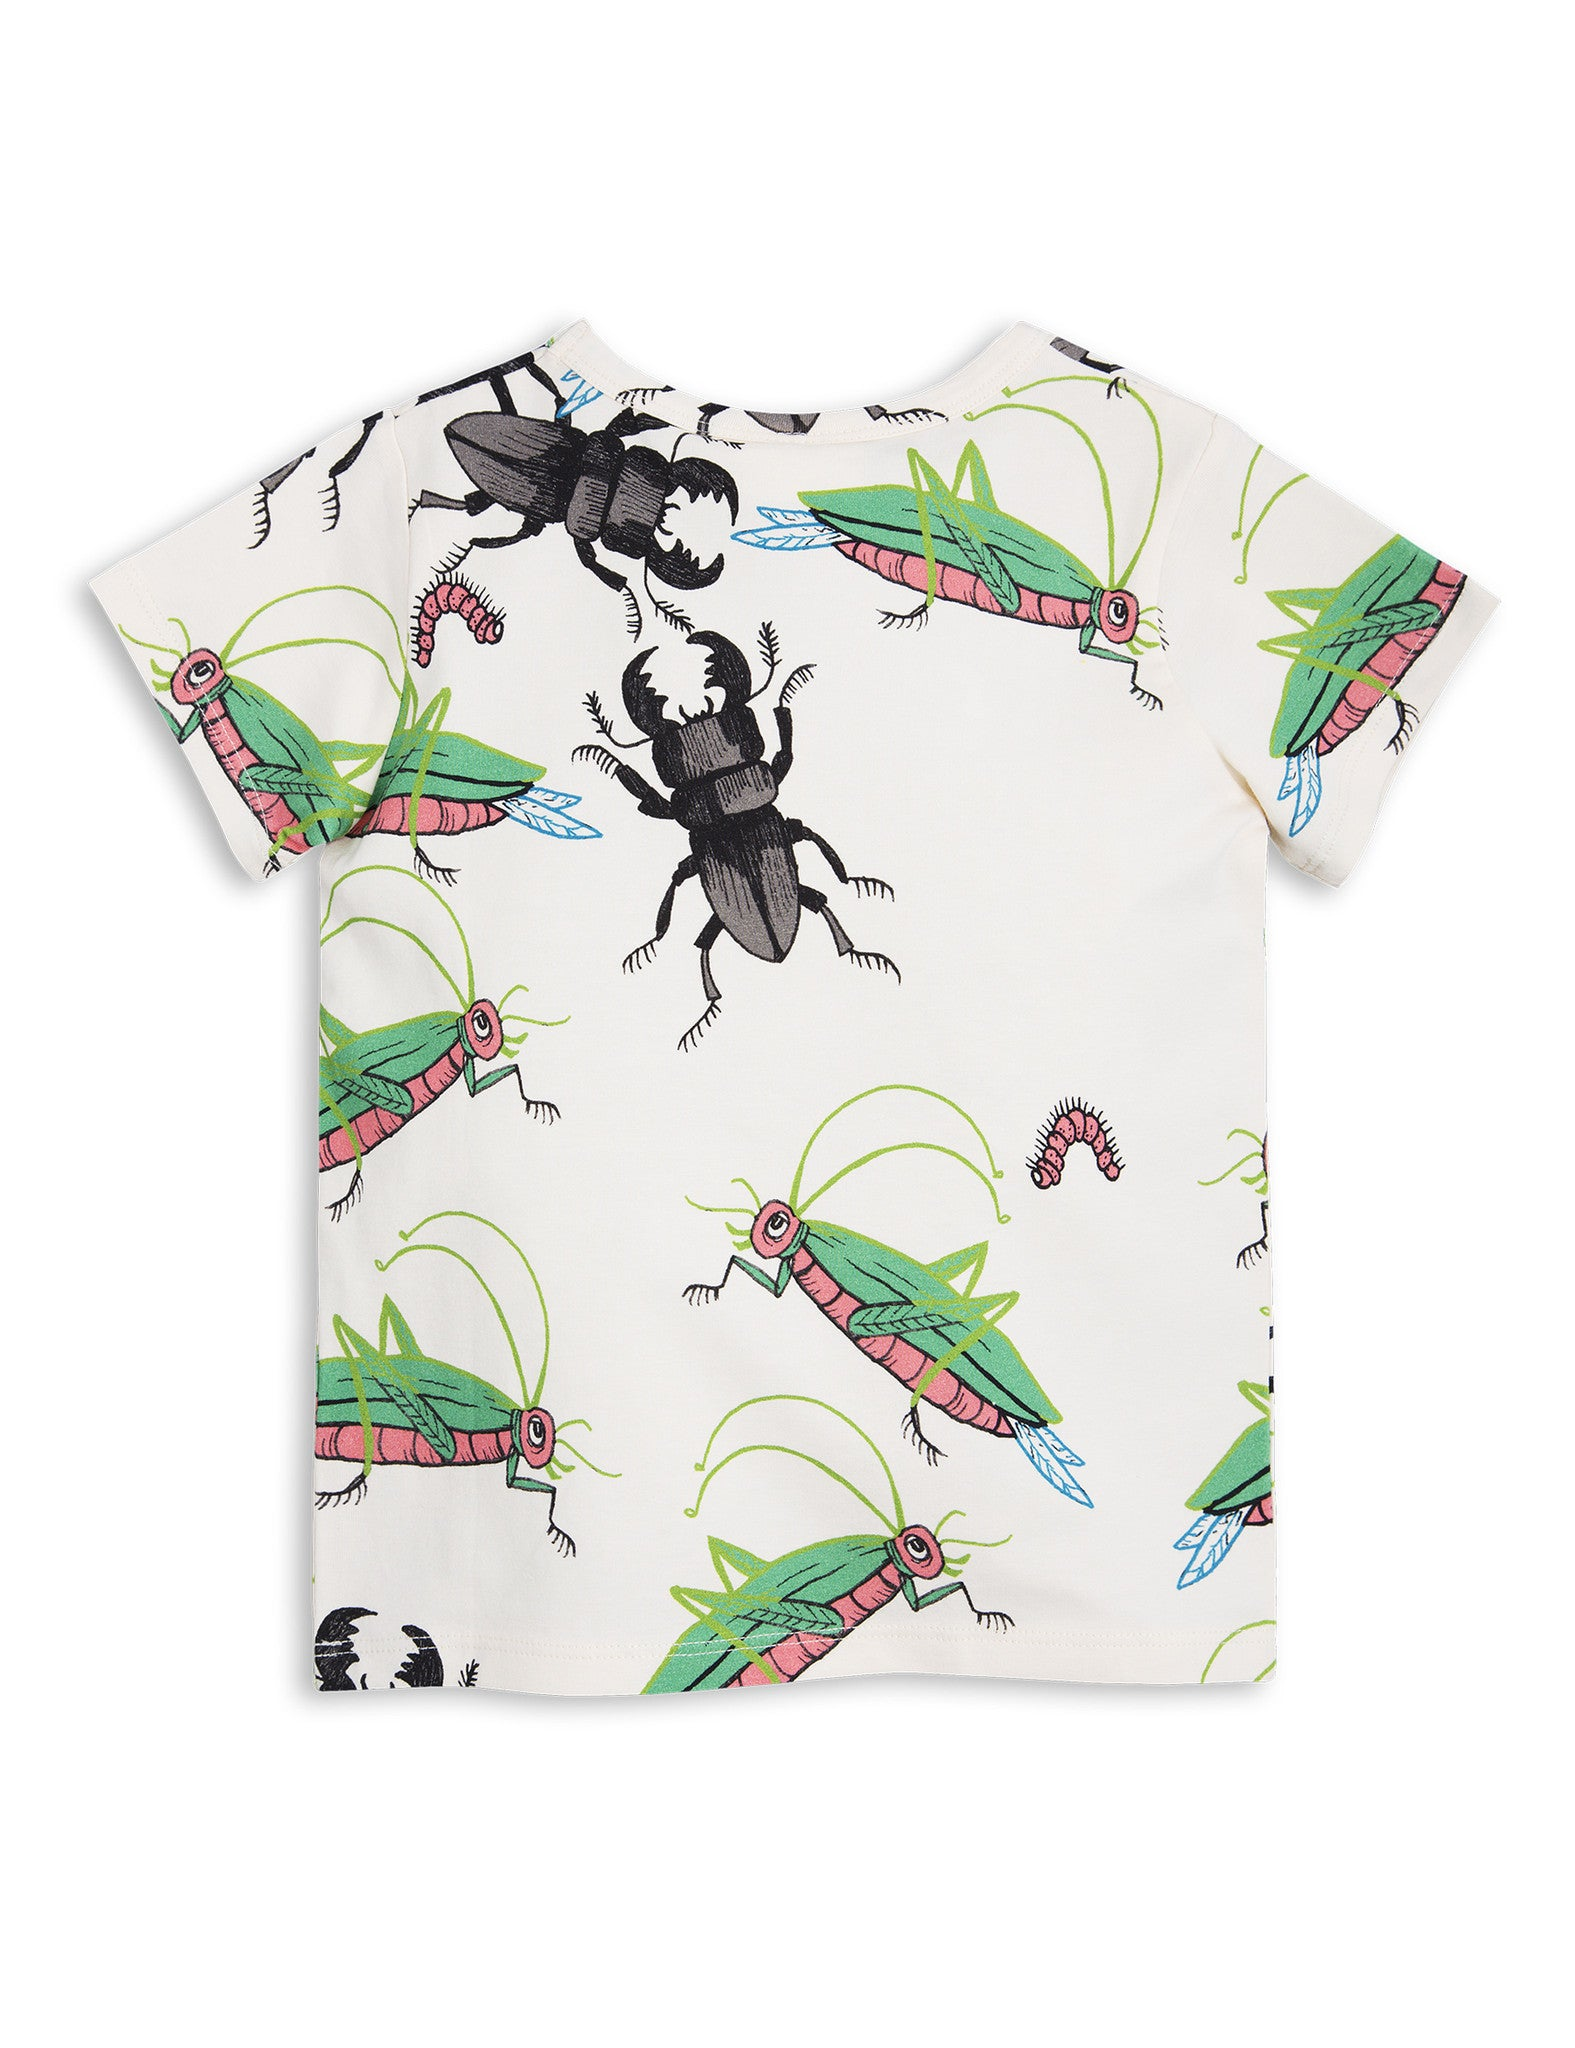 Mini Rodini | Insects Tee | The Mini Life